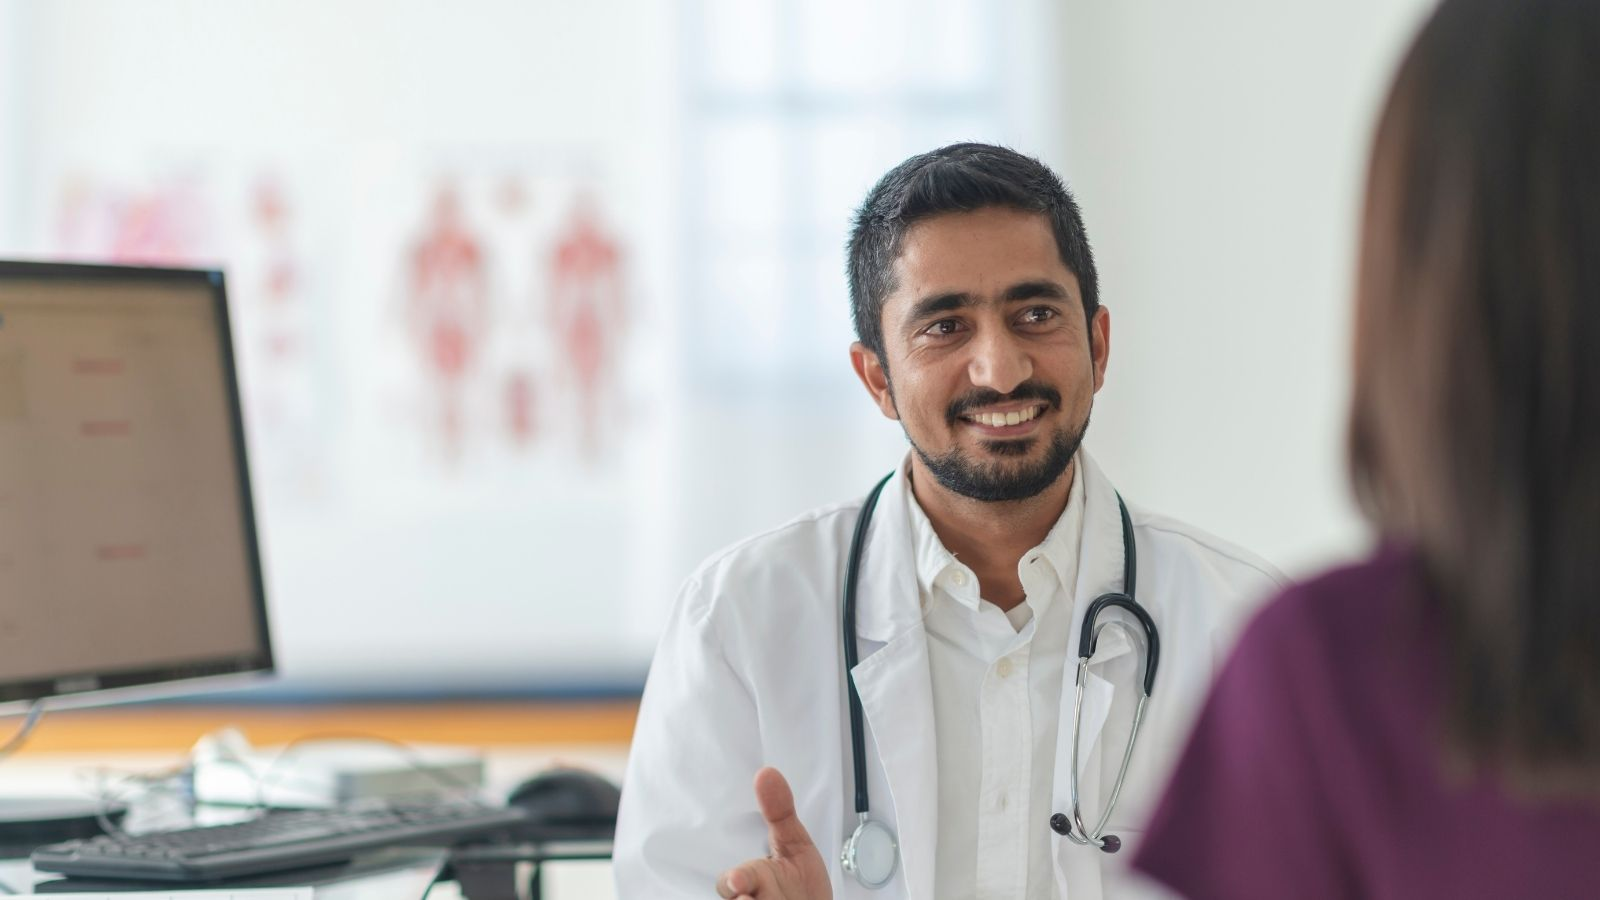 How to be a Top Doctor on Top Doctors